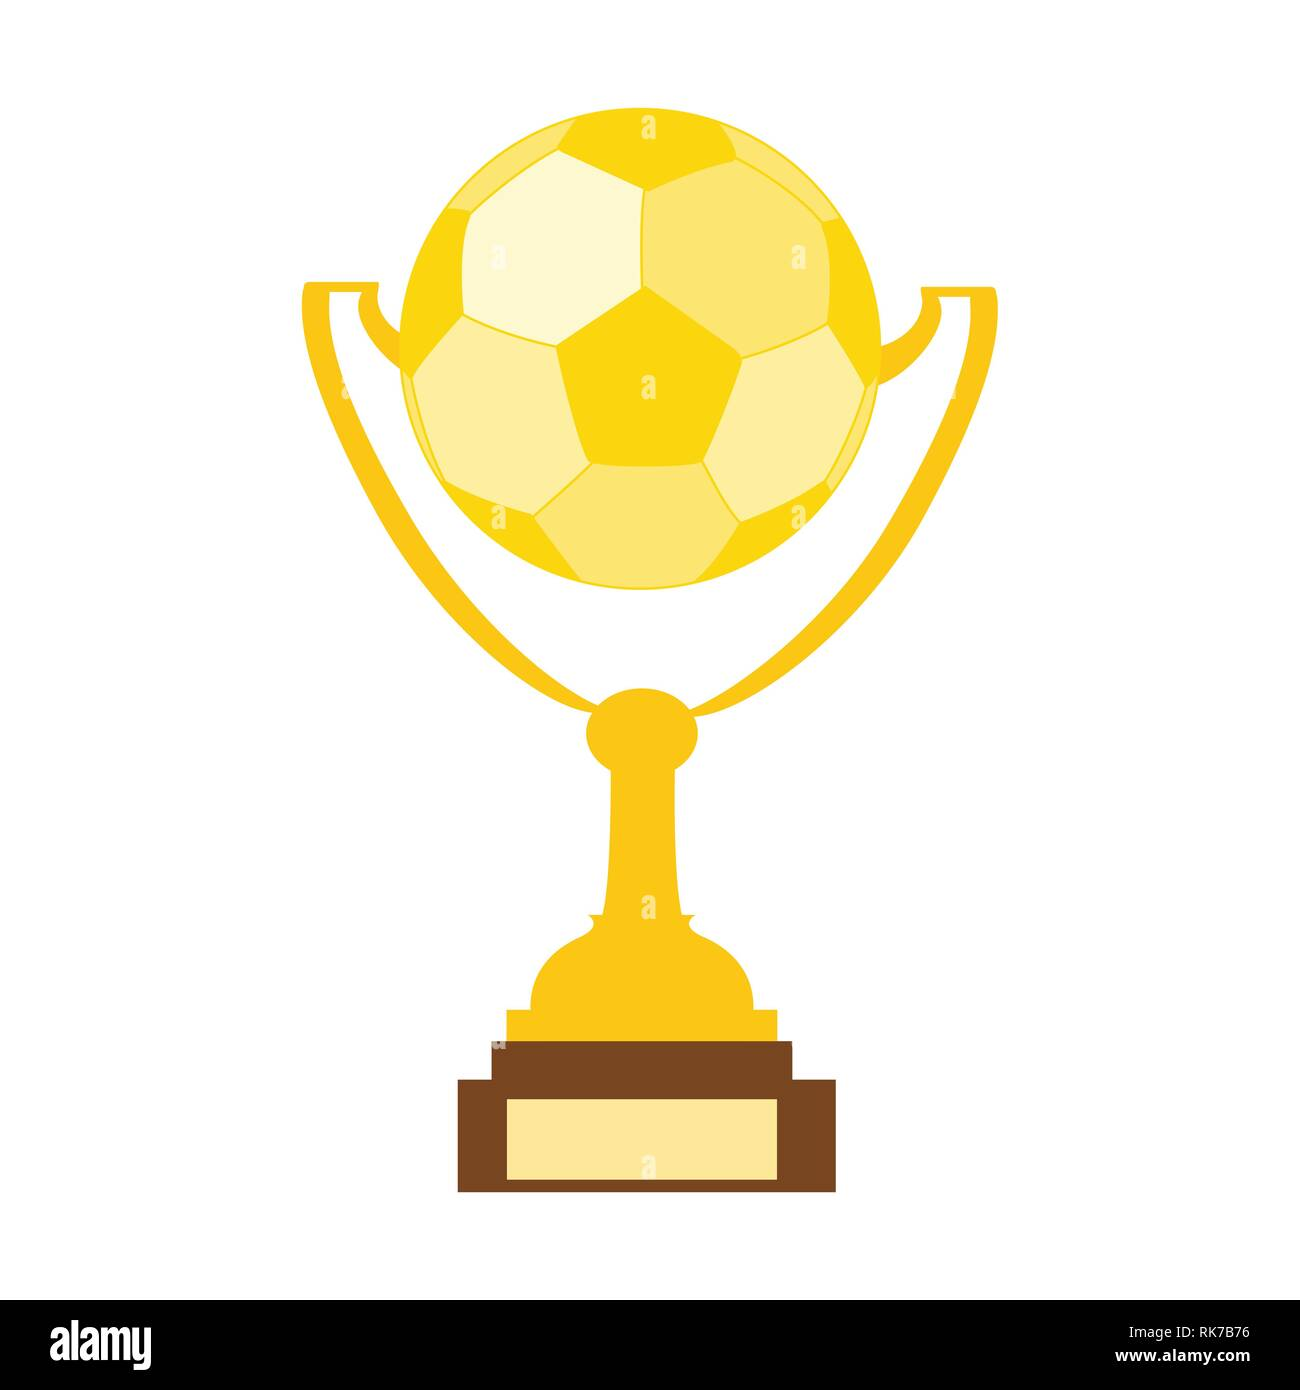 Abstract Golden Soccer Trophy. Vector Illustration. Golden champion cup isolated on white background. Championship trophy with glittering confetti par - Stock Vector